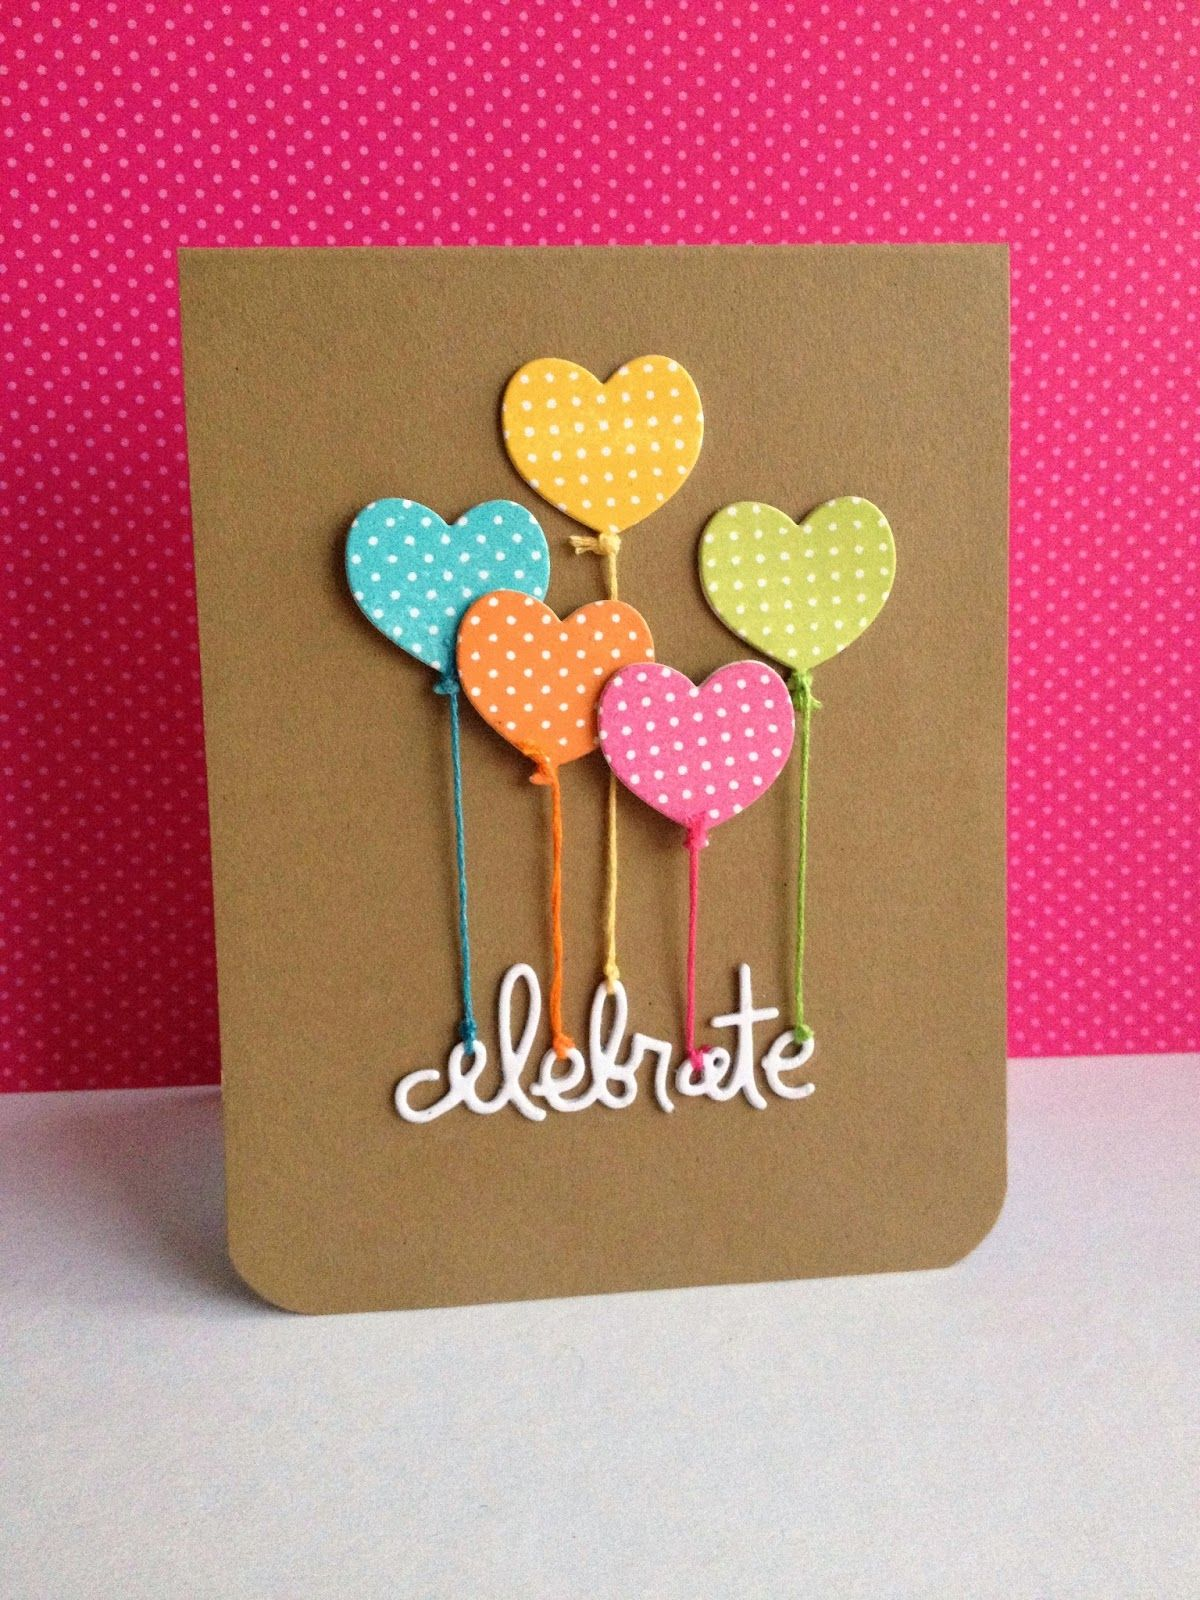 Heart shaped balloons stamped with colorful dotted patterns are